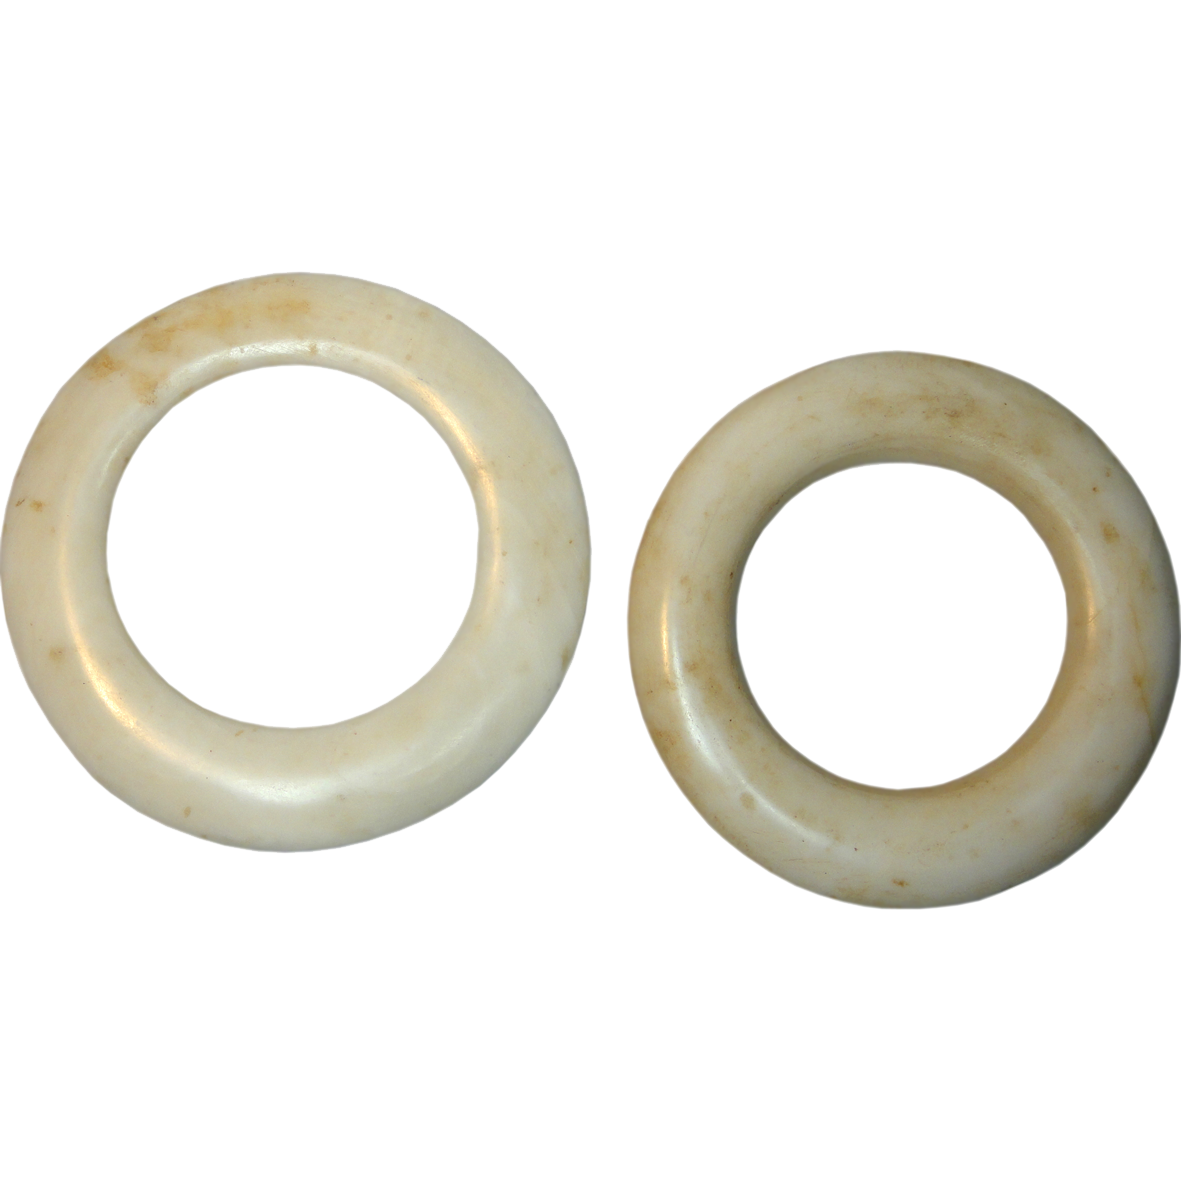 Papua New Guinea, East Sepik Province, Two Yua Clam Shell Rings (reverse)